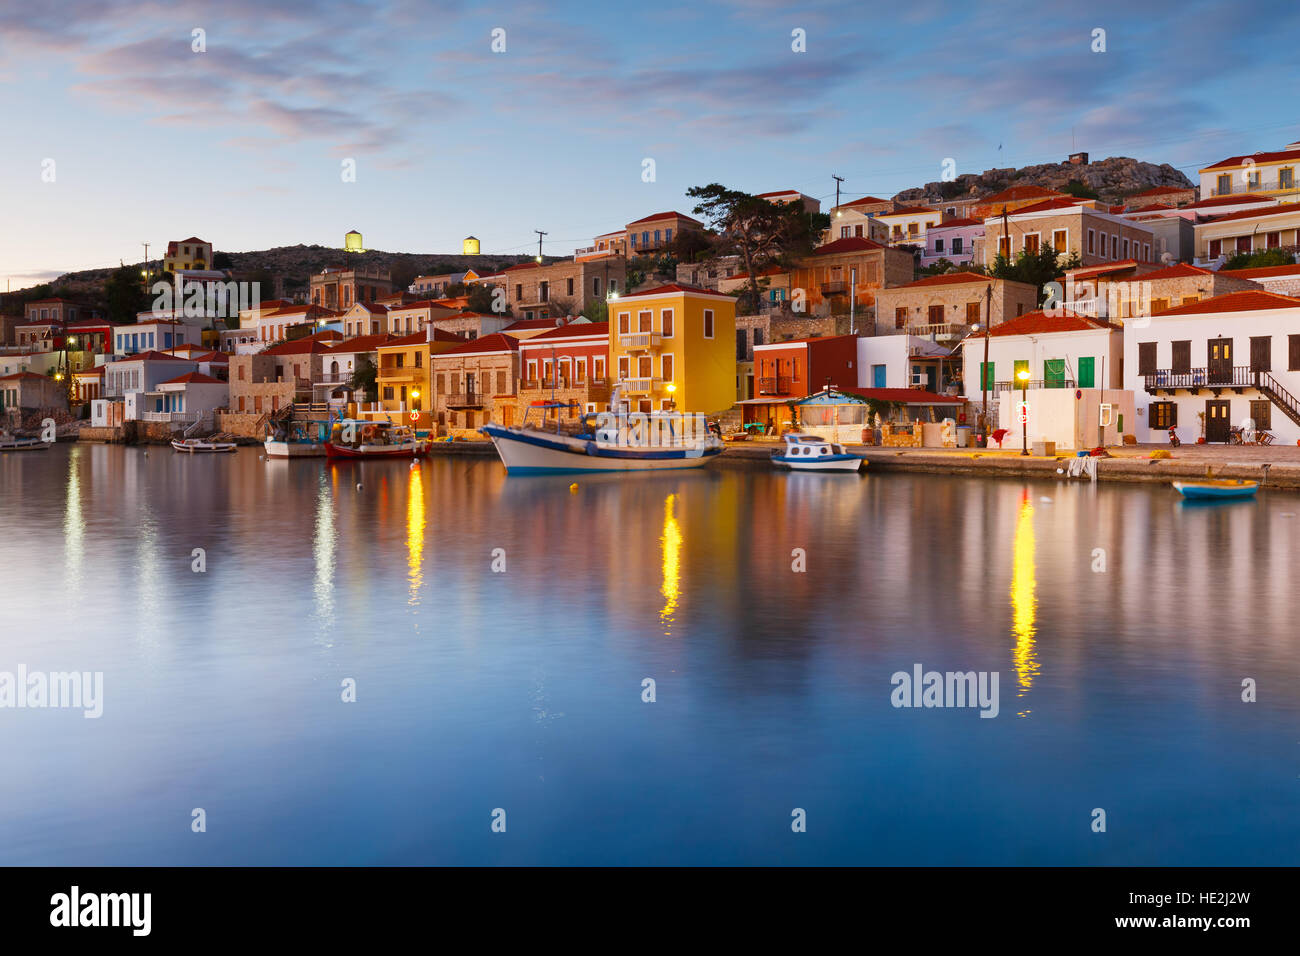 Vue de village de Halki et son port, la Grèce. Photo Stock